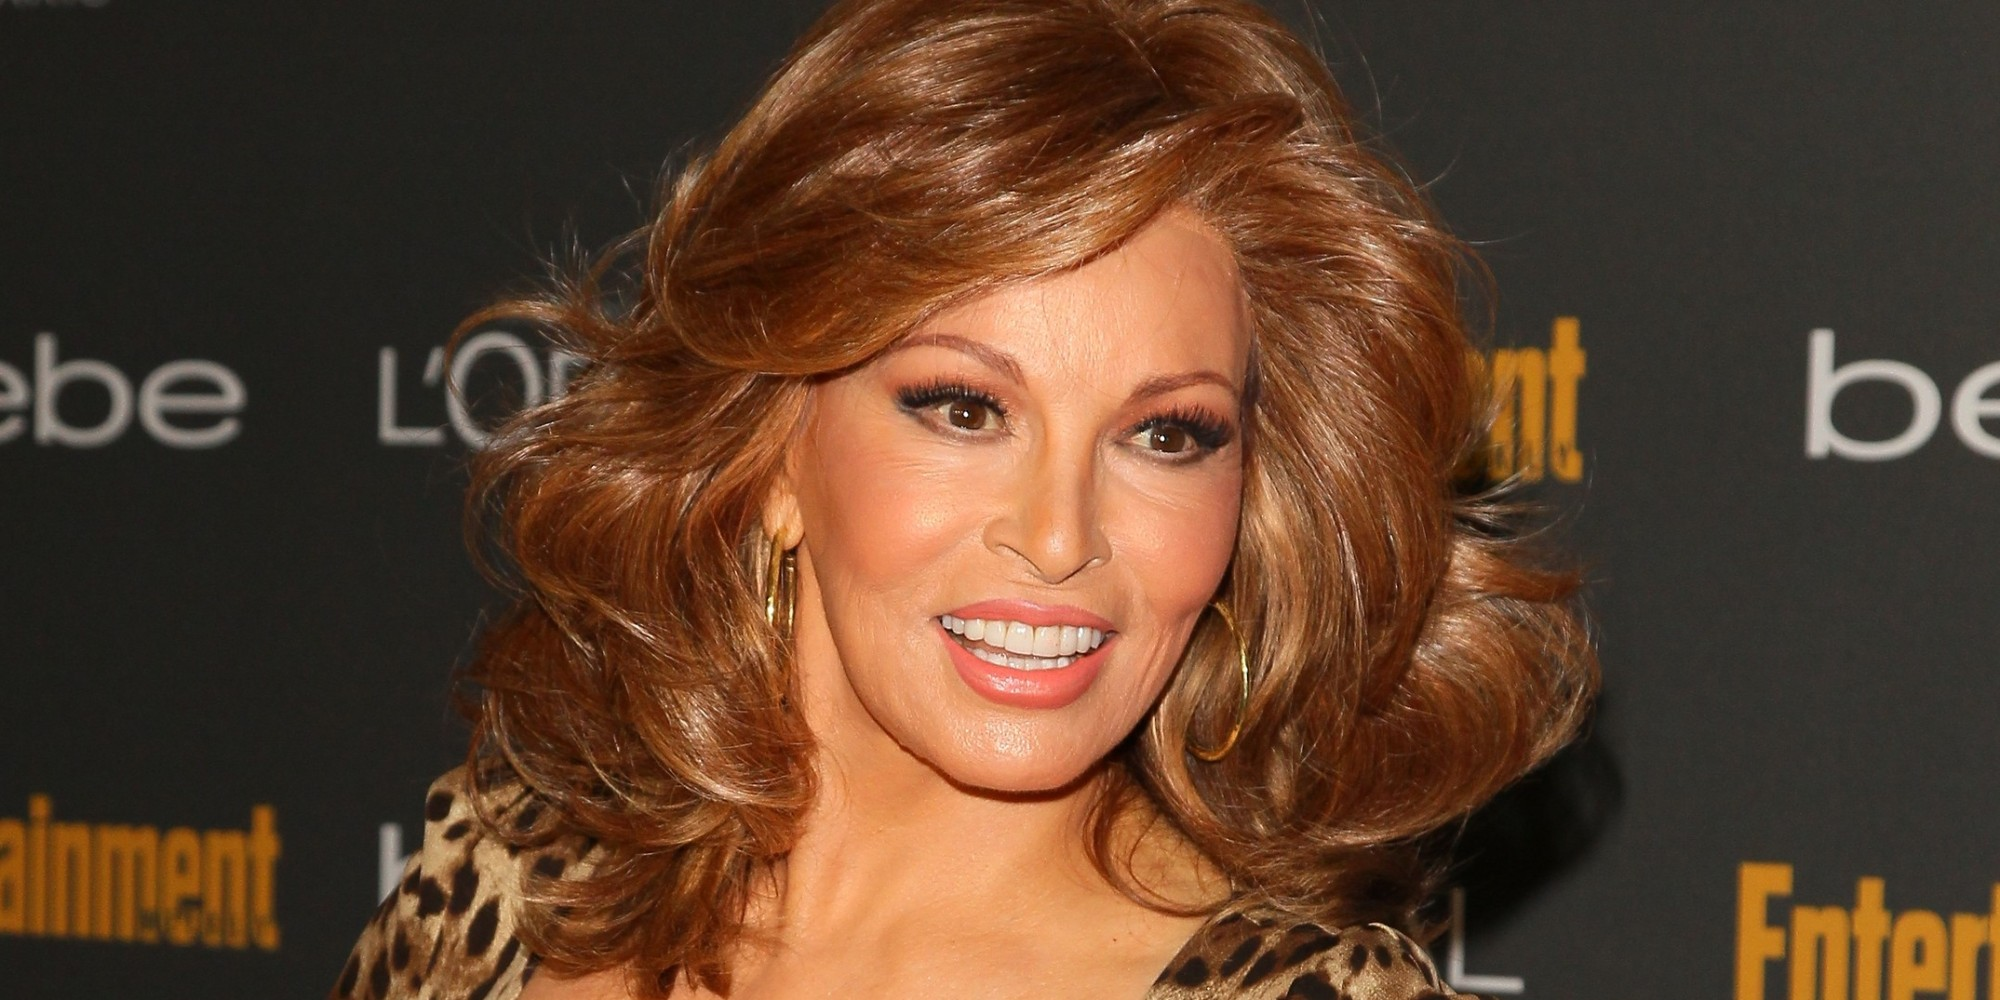 Raquel Welch, 73, Looks Half Her Age At Pre-Emmys Party In